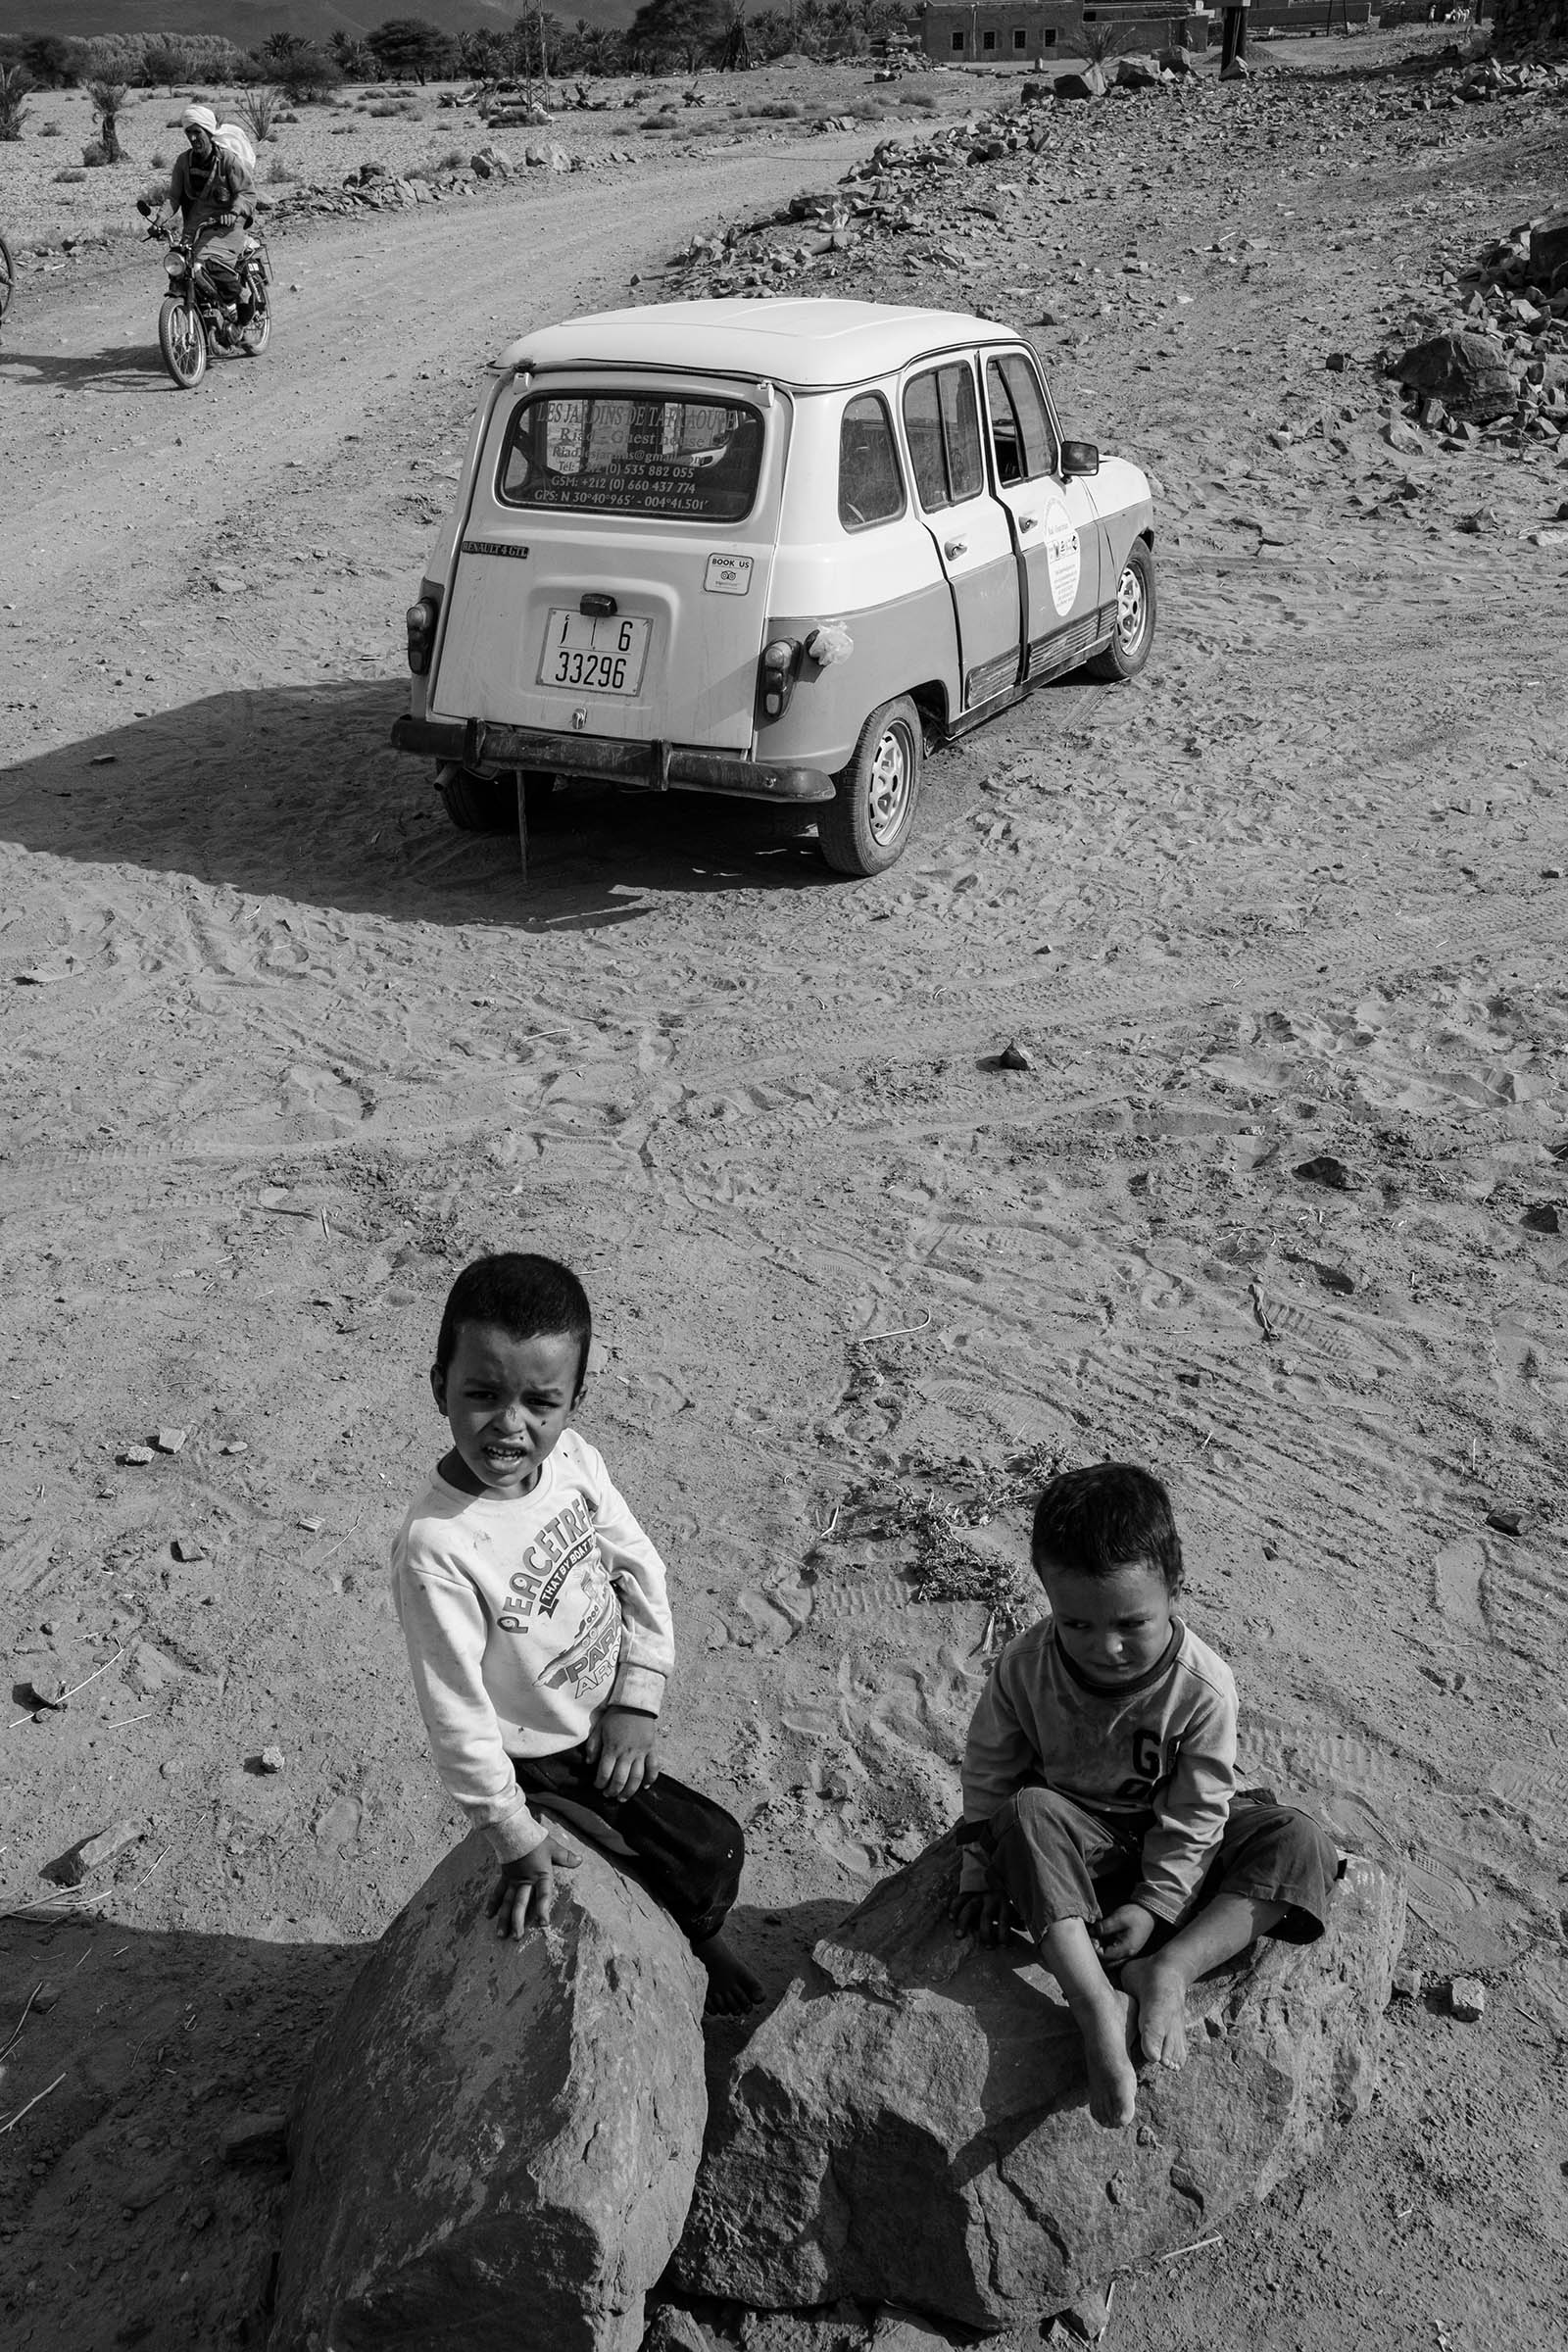 Boys and car in Tafraoute, Morocco